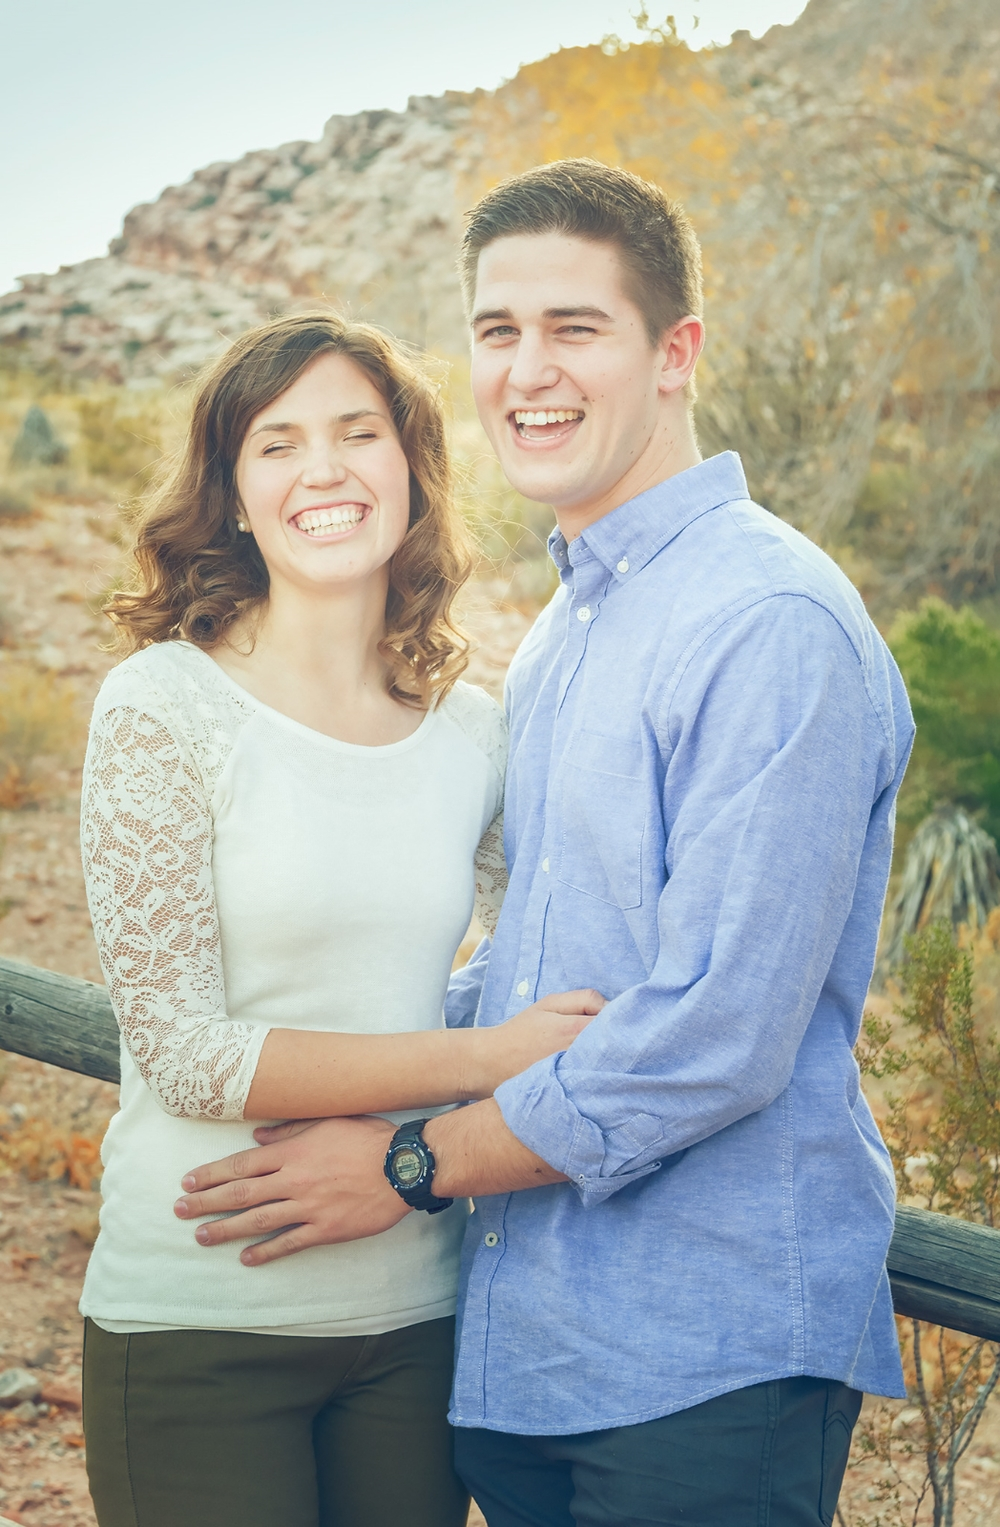 SteveandNancy_Engagements_0003_web.jpg